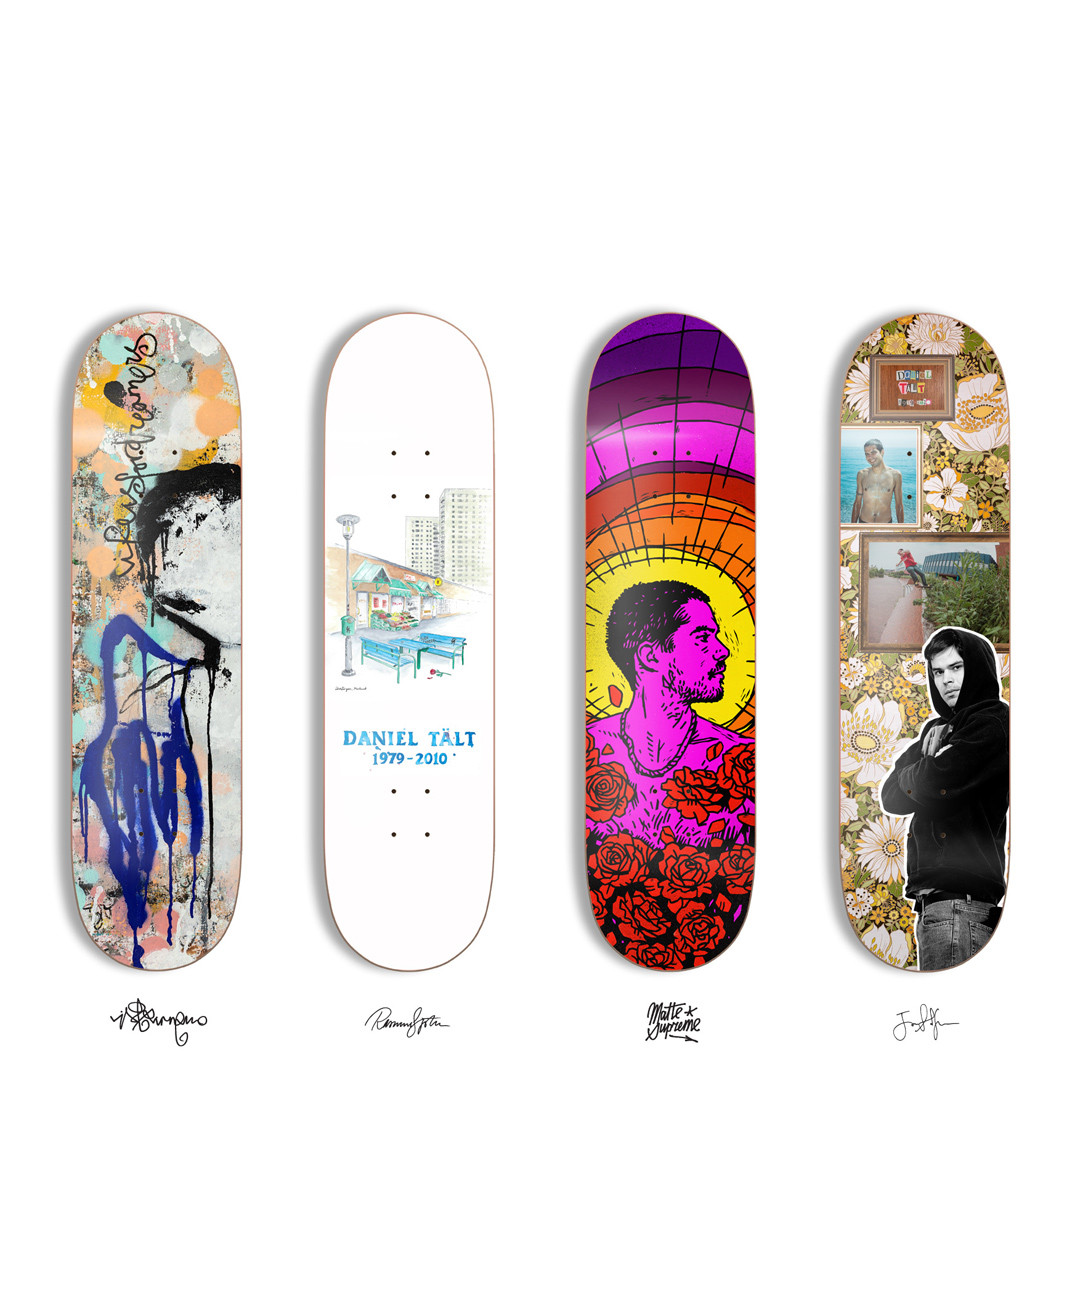 Board series by 4 invited artists